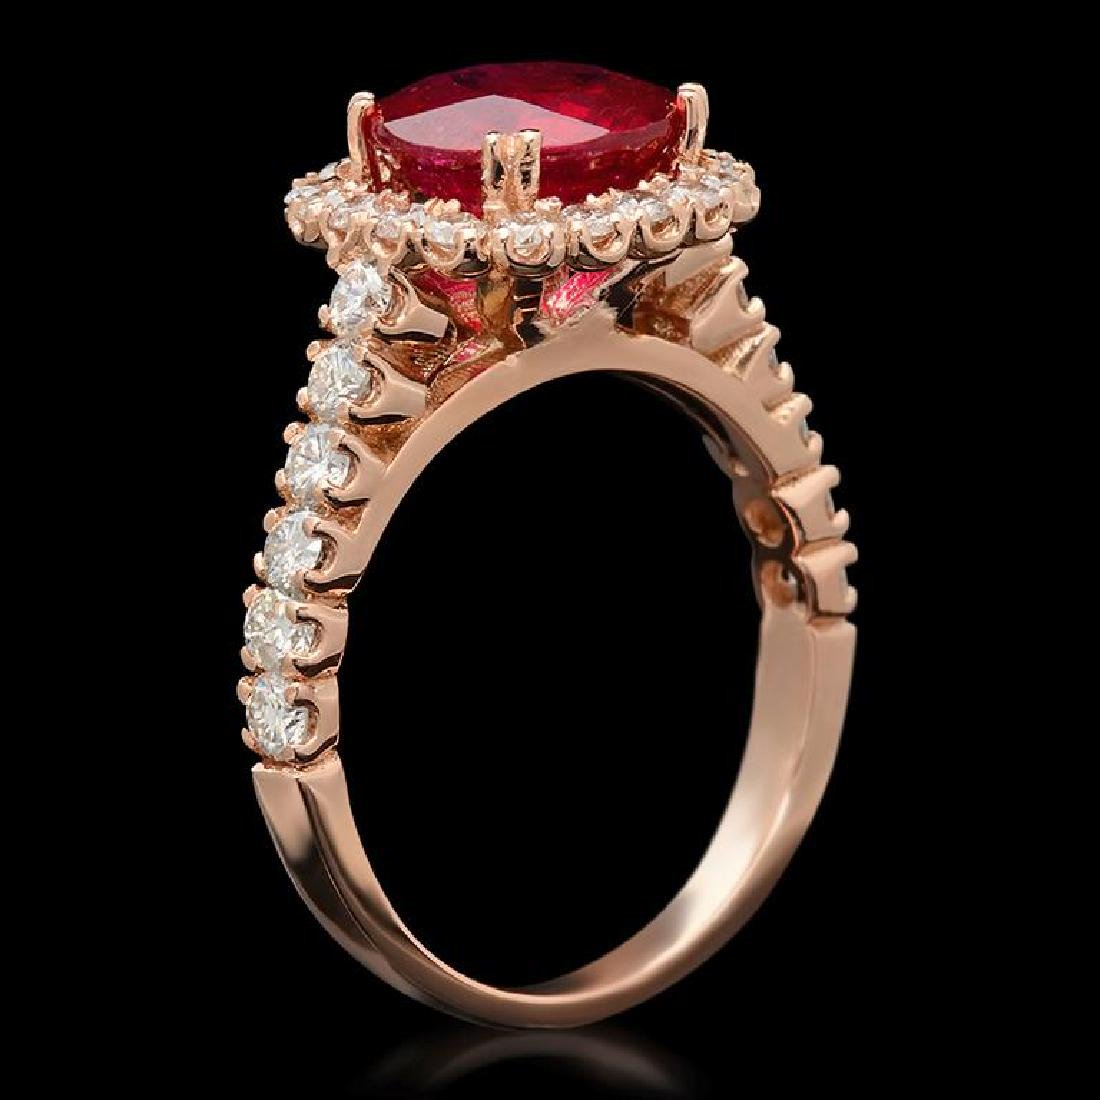 14K Gold 3.28ct Ruby 1.26ct Diamond Ring - 2